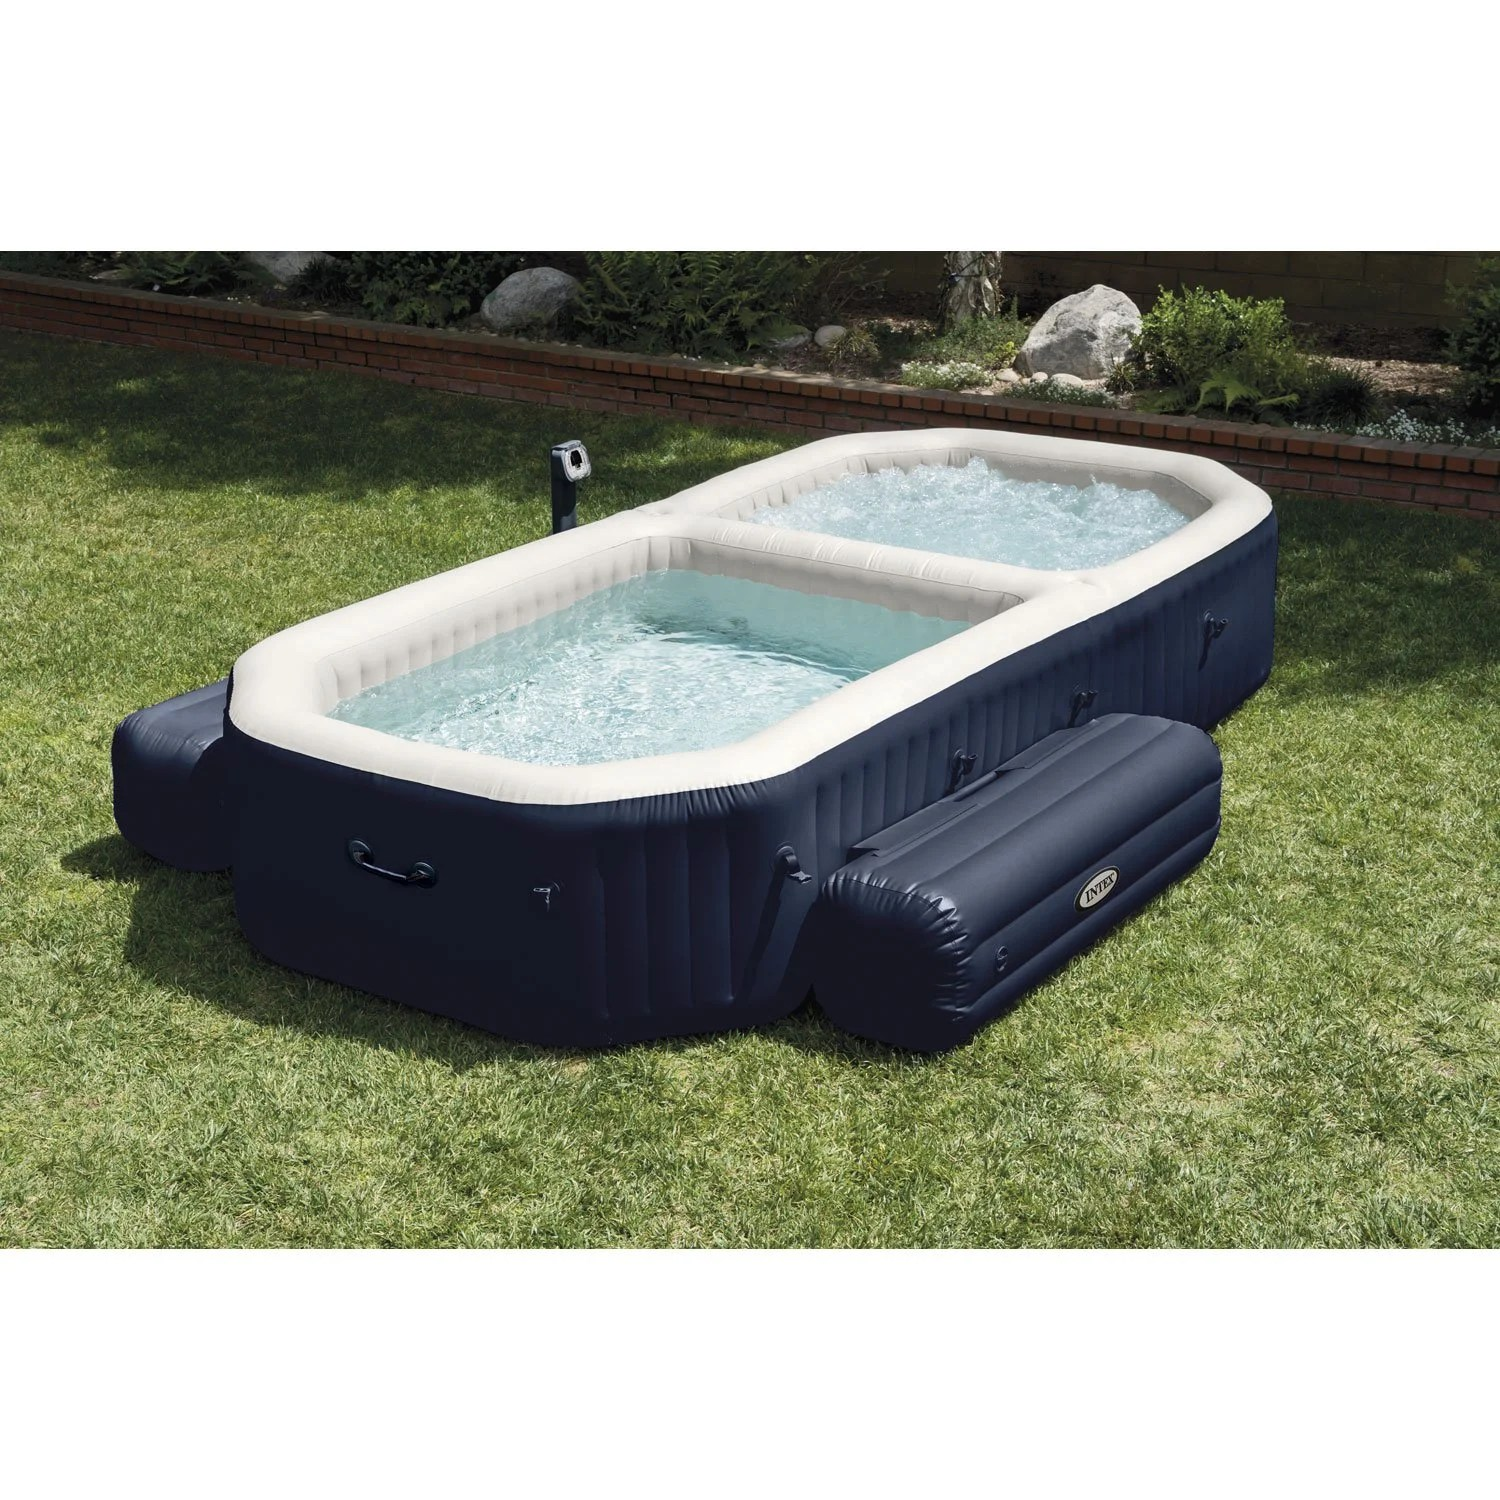 Piscine Spa Gonflable Piscine Gonflable Decathlon